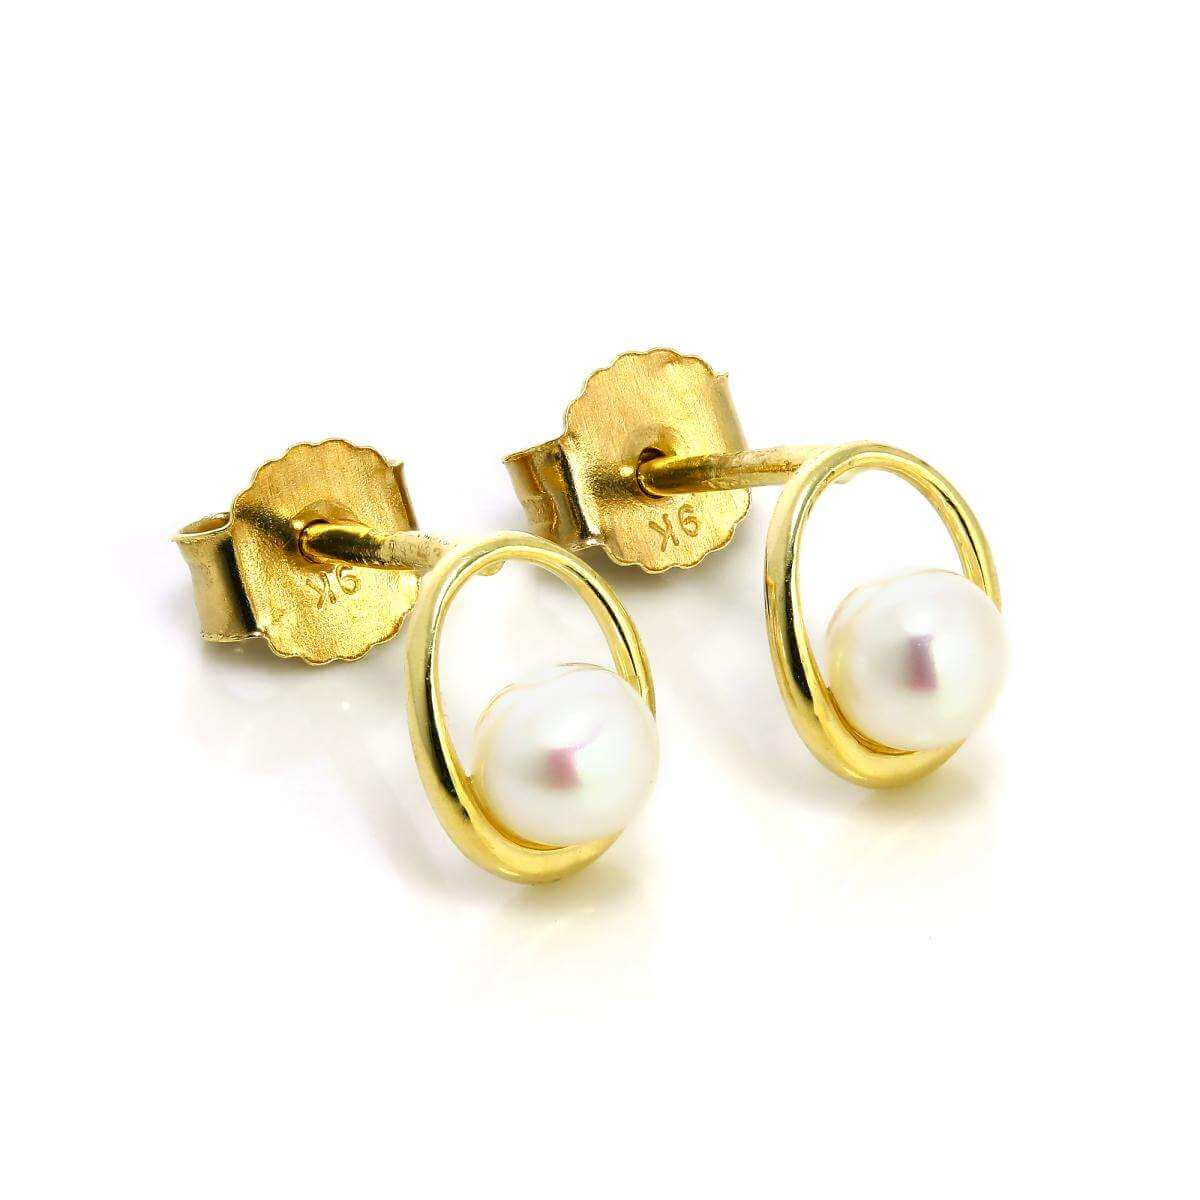 9ct Gold & Freshwater Pearl Open Stud Earrings